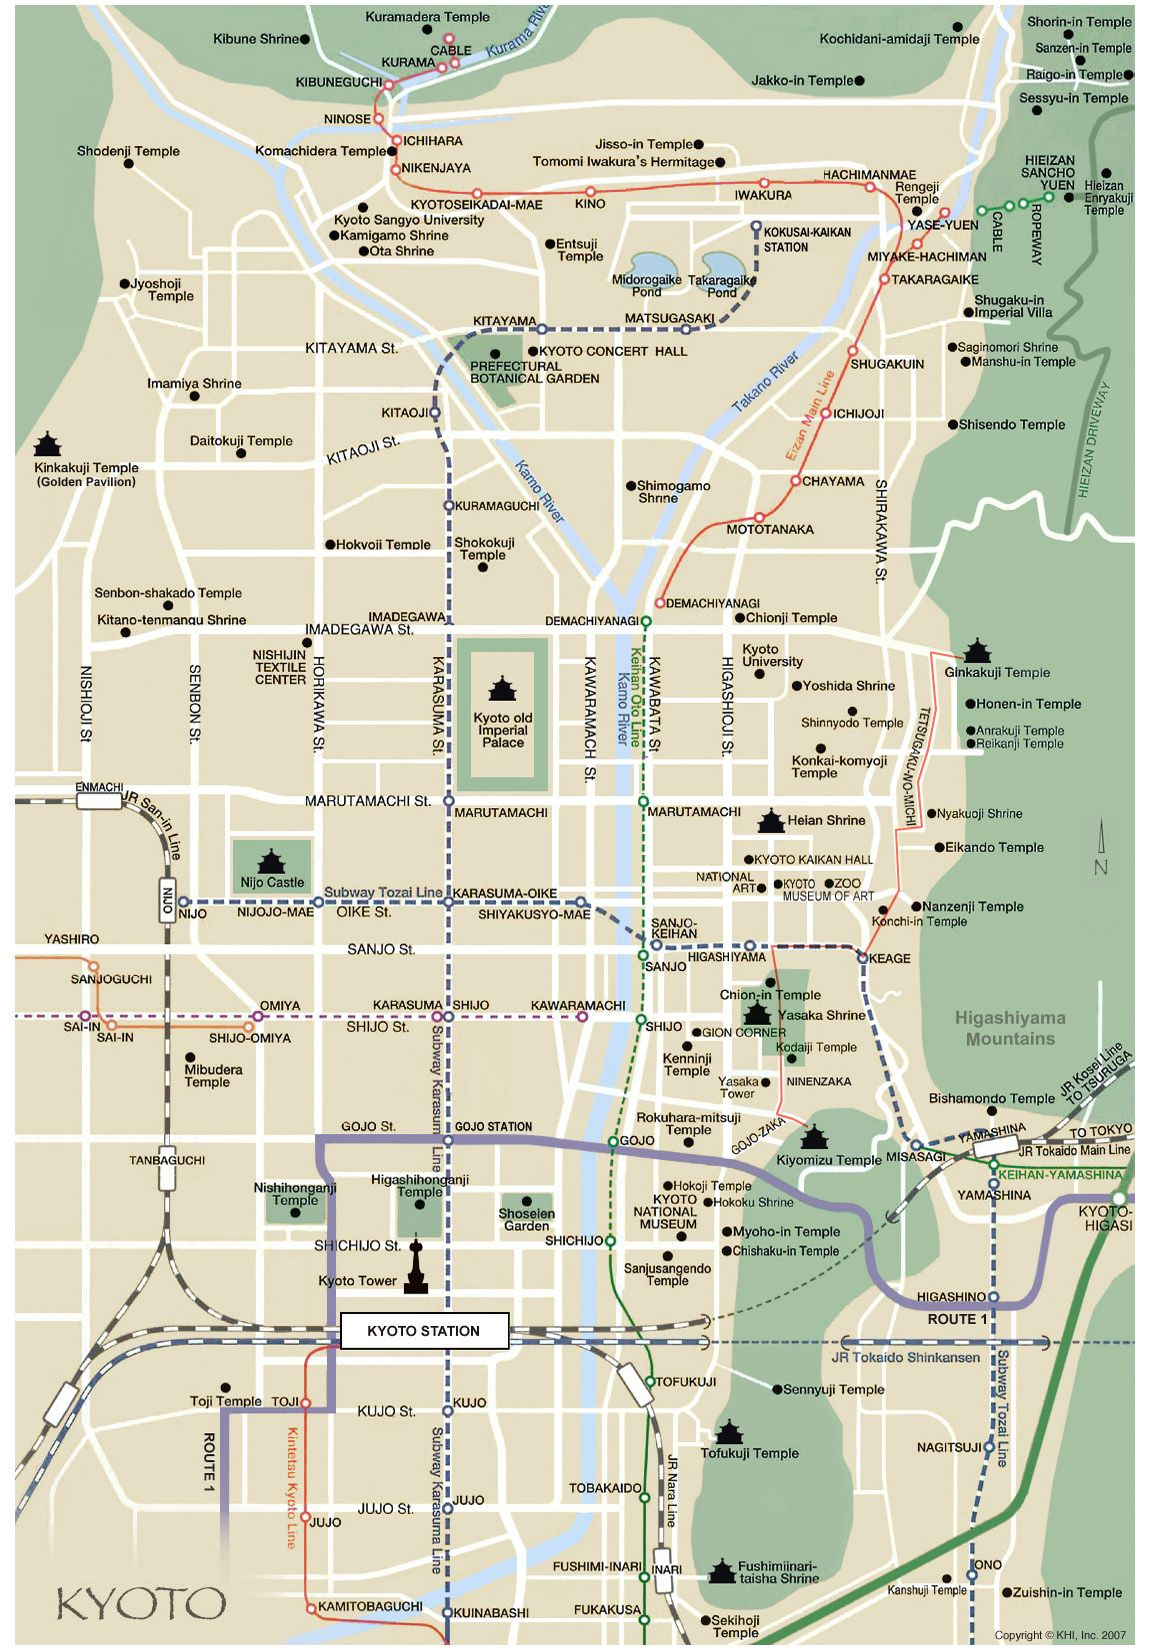 Kyoto Map English Places Japan Pinterest Kyoto - Japan map english version